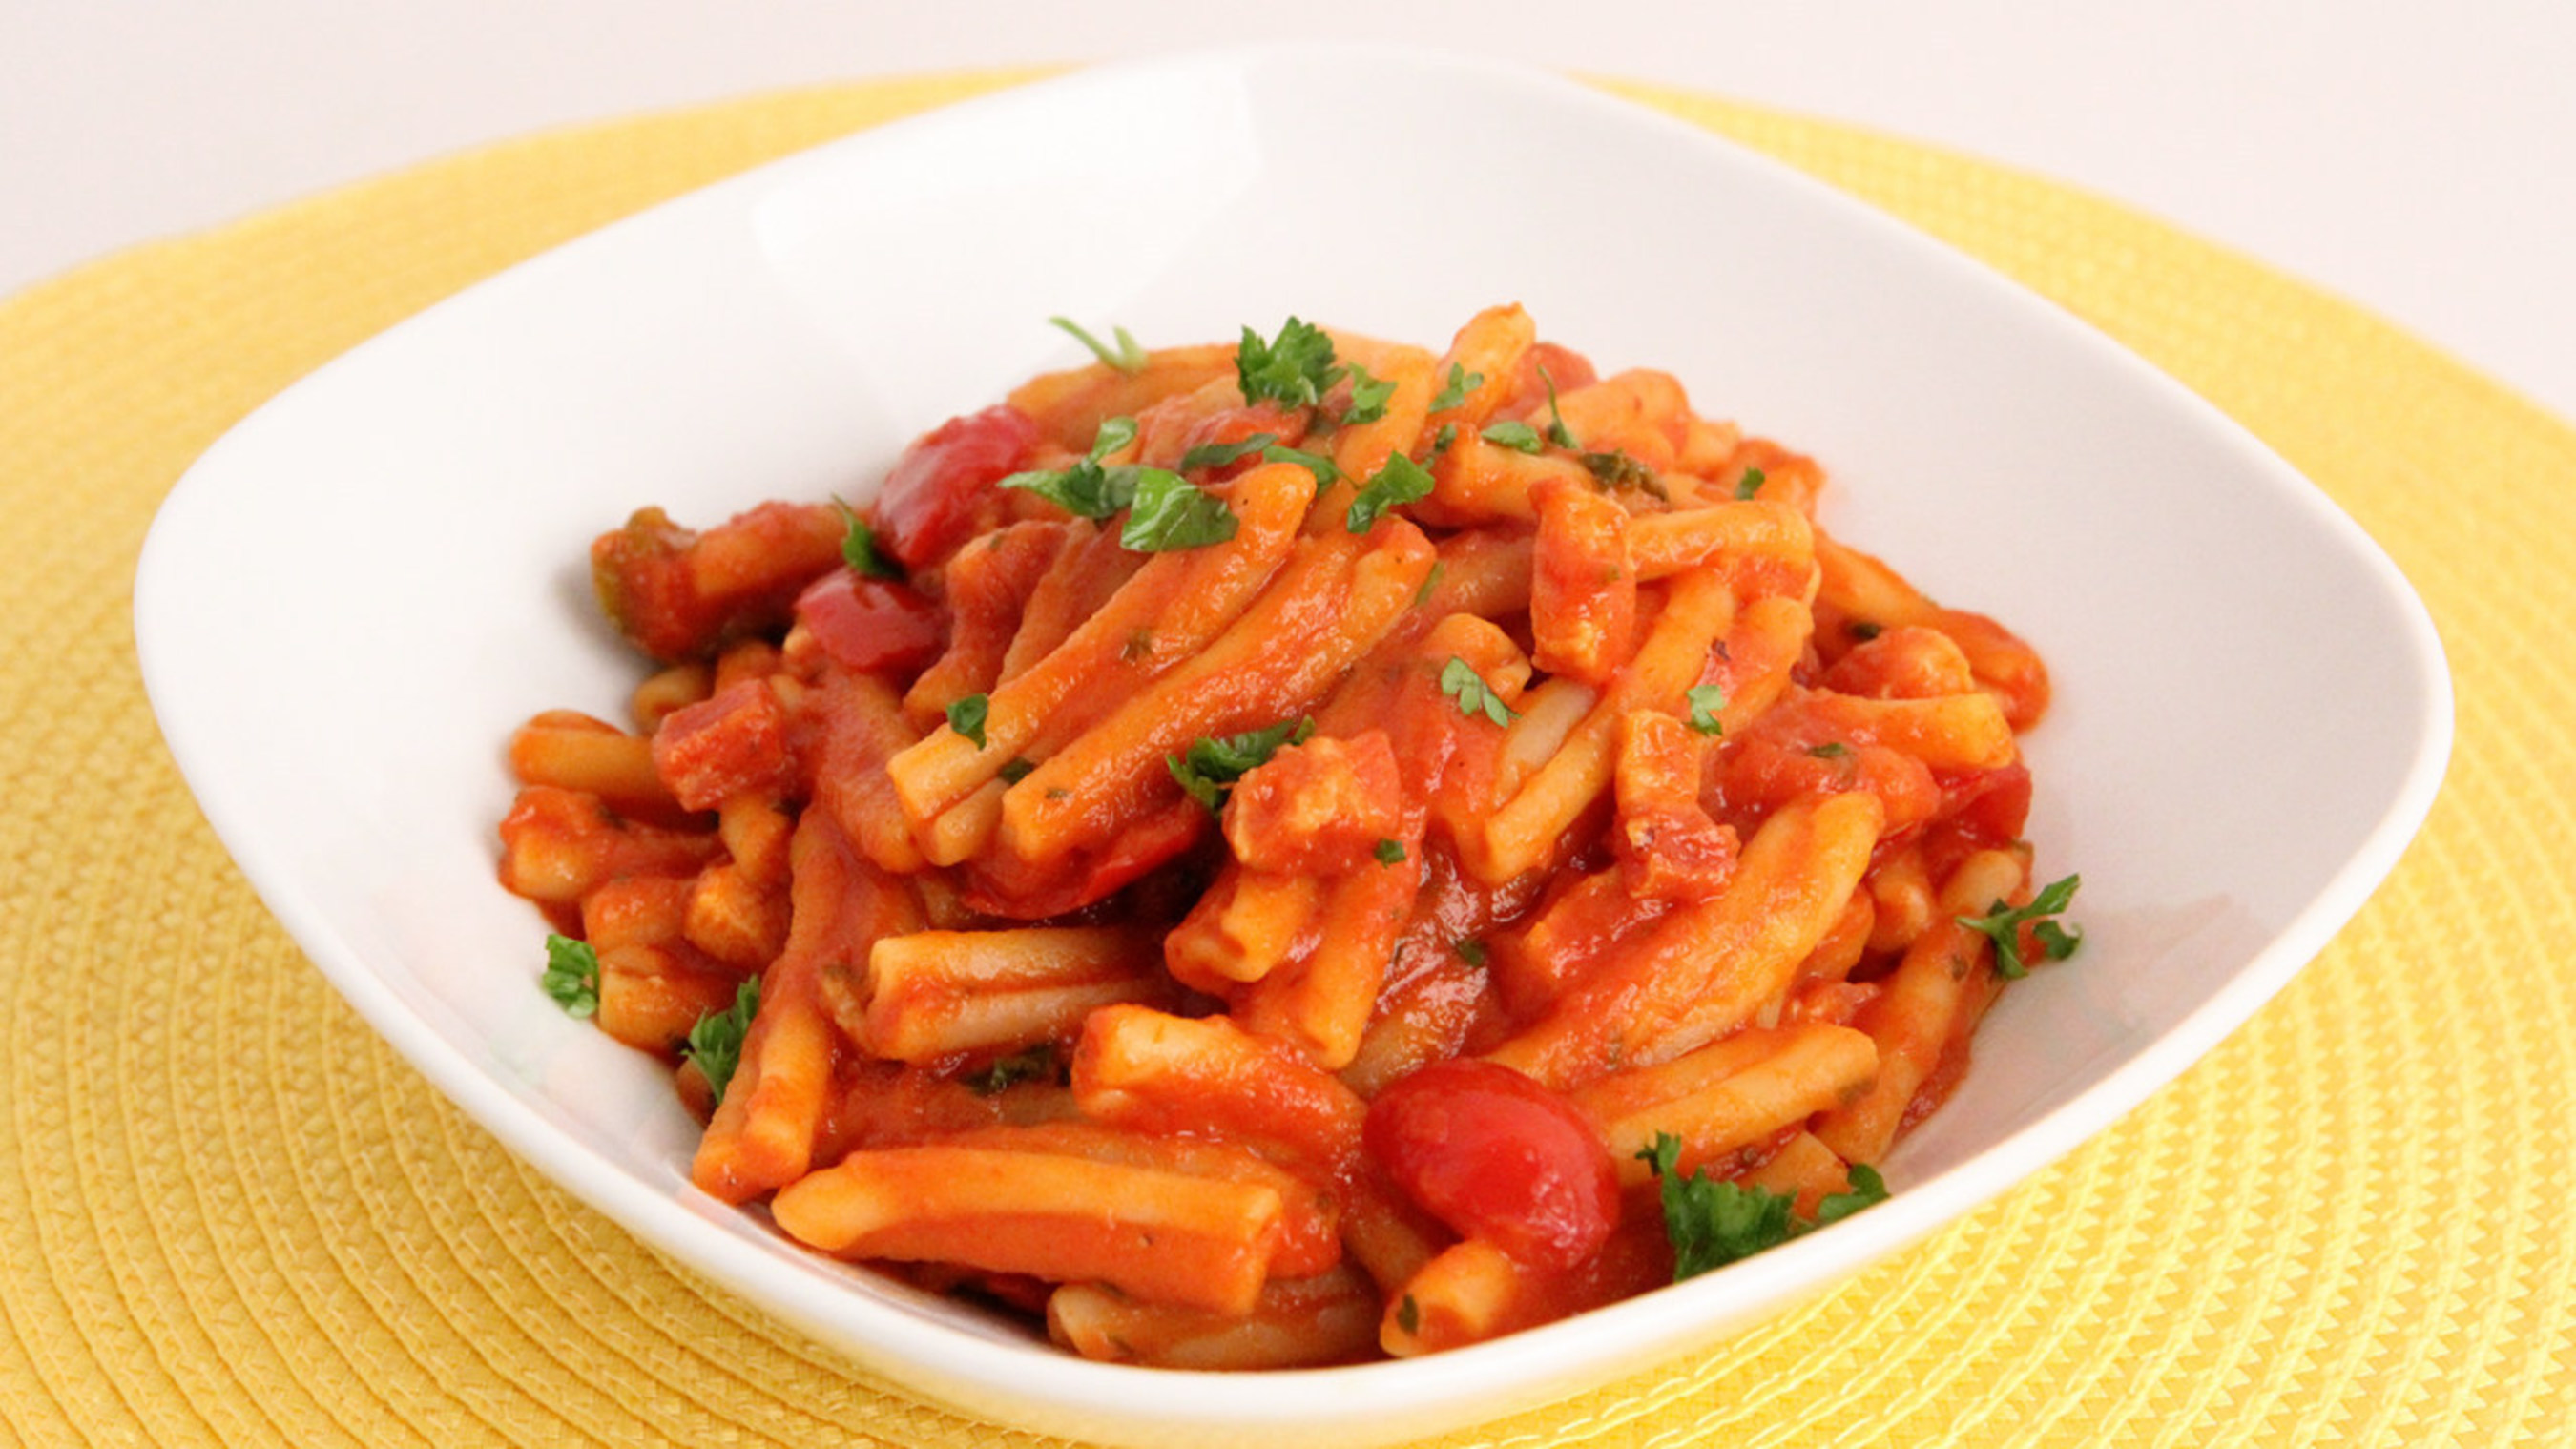 """ConAgra Foods brands including Hunt's(R) tomatoes, Alexia(R) Foods and Reddi-wip(R) are offering Valentine's Day meal ideas through partnerships with Internet cooking show host Laura Vitale (""""Laura in the Kitchen"""") and grocery delivery service Instacart. Pasta with Pancetta and Cherry Peppers, created on behalf of Hunt's(R) tomatoes and one of Vitale's childhood favorites, is a delicious, simple dish that requires only a handful of ingredients. Couples are encouraged to post a picture of their Valentine's Day meal at home using #VDayIn. Additional recipes and inspiration for a romantic Valentine's Day from ConAgra Foods brands can be found at www.forkful.com."""